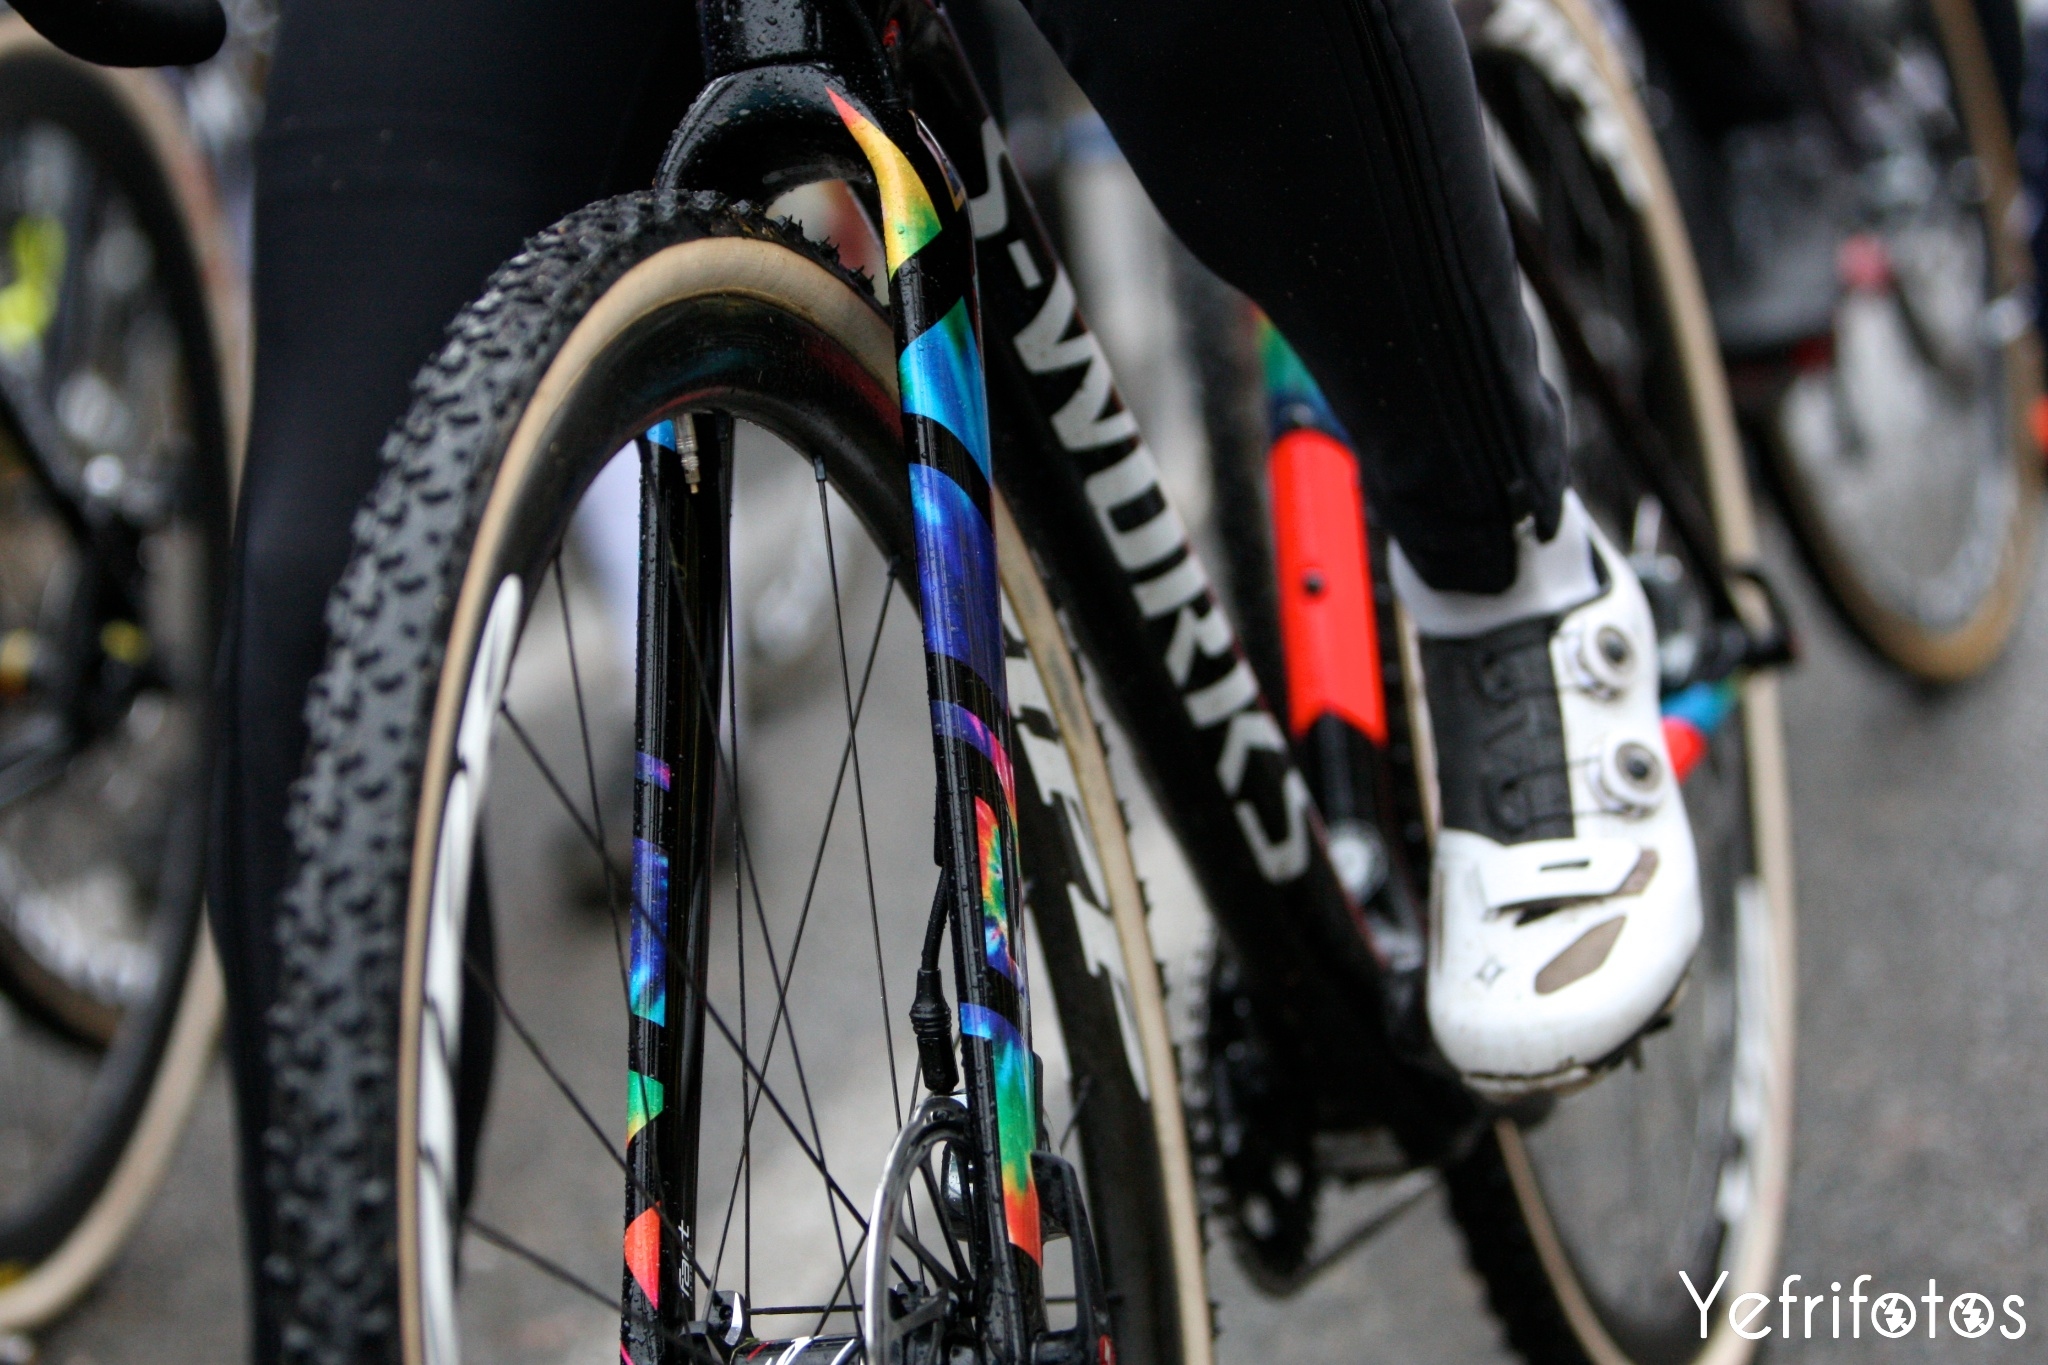 S-WORKS - Specialized - Boels Dolmans - Coupe de France Cyclocross Jablines